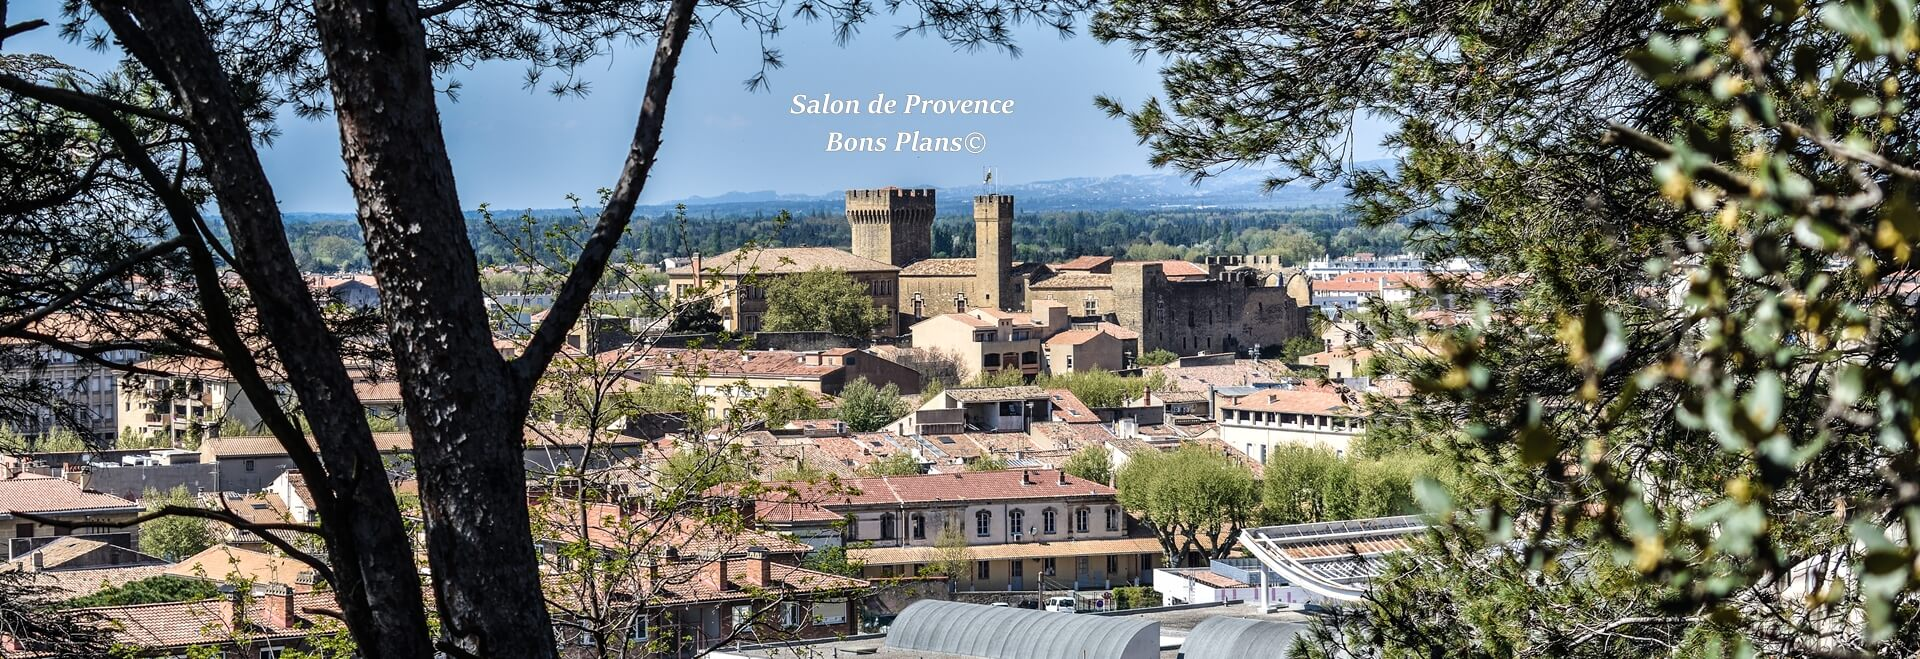 Salon de provence bons plans for Bibliotheque salon de provence